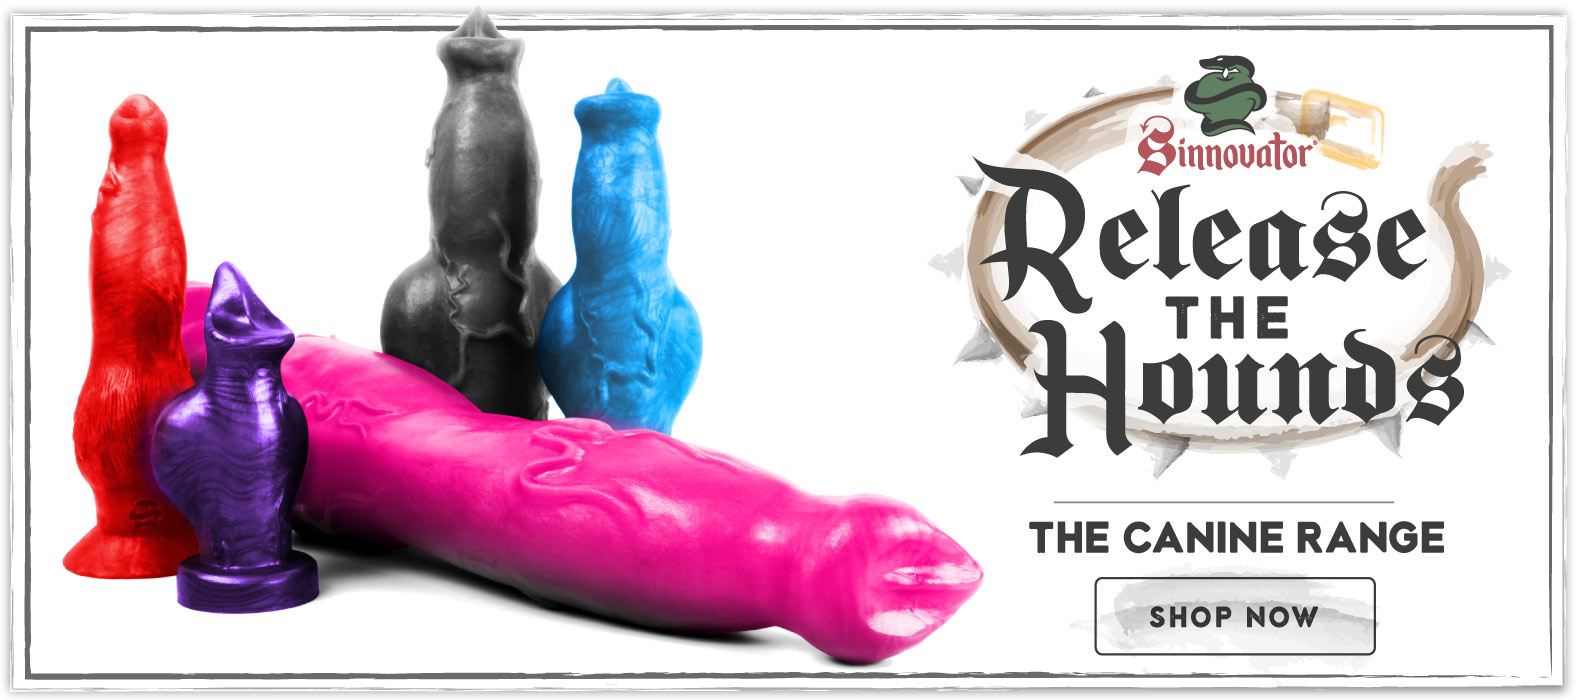 Canine Sex Toy Range from Sinnovator